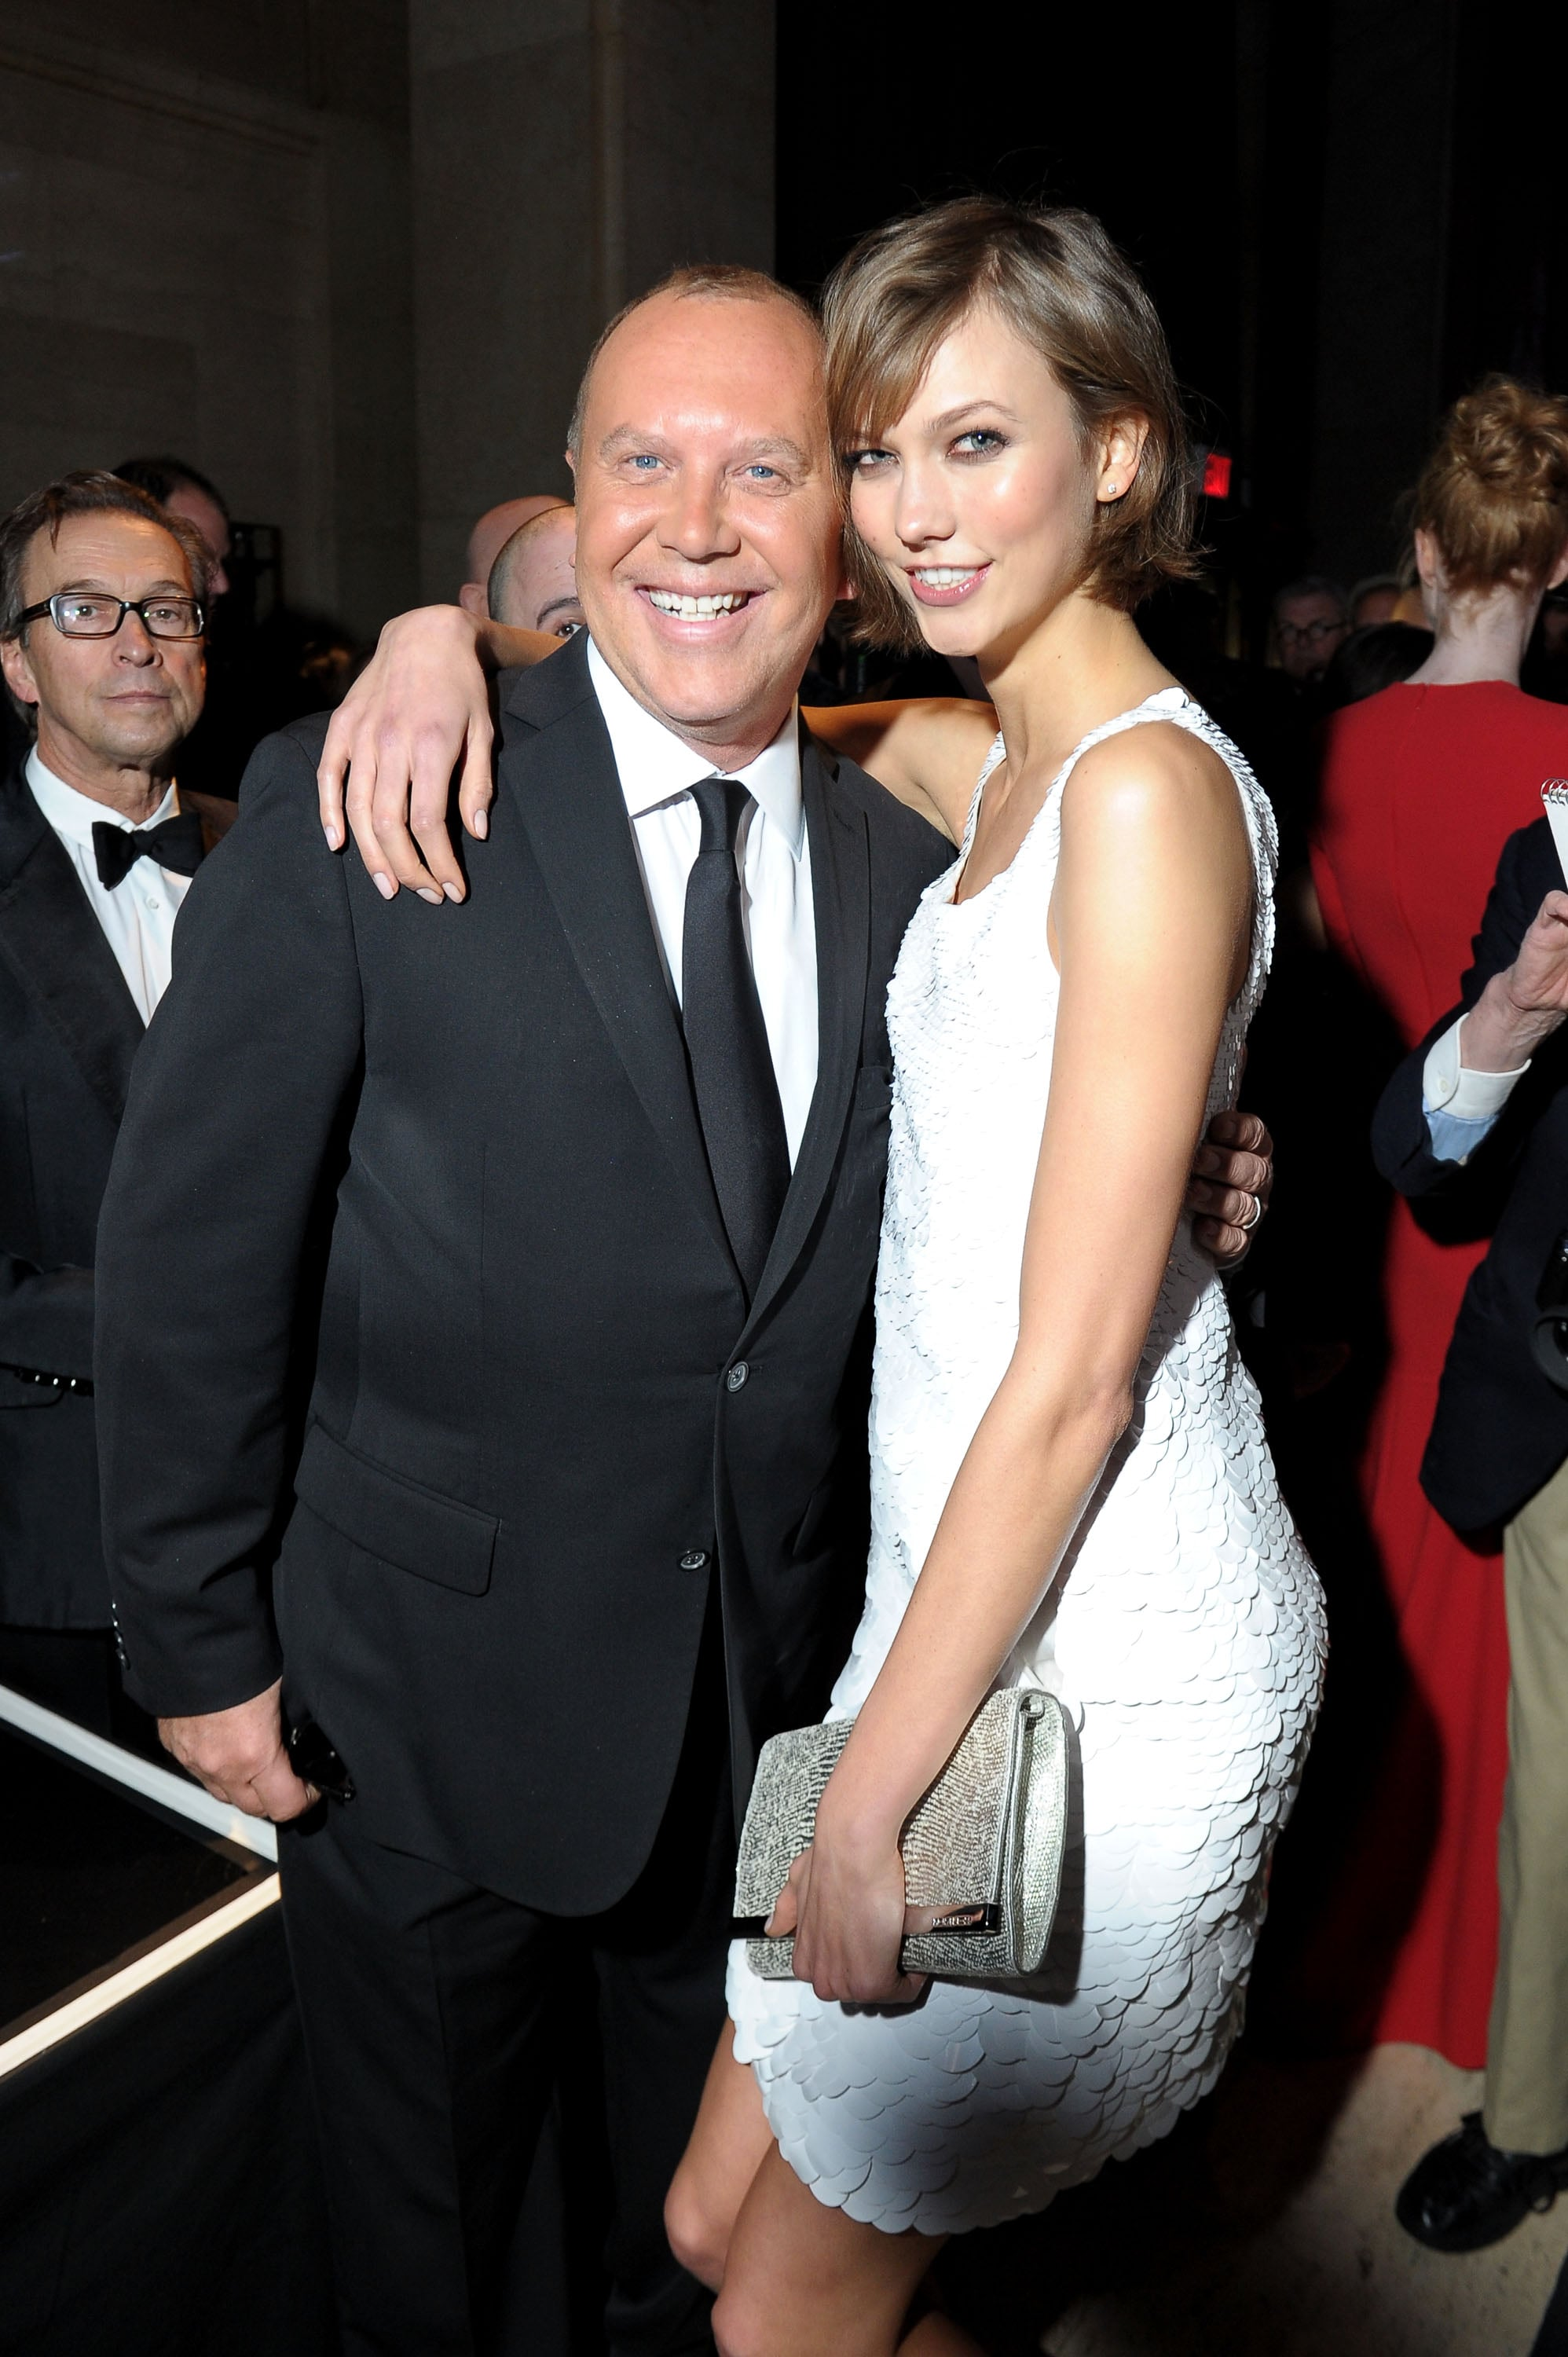 Karlie Kloss got chummy with Michael Kors at the amfAR New York Gala in February 2013.